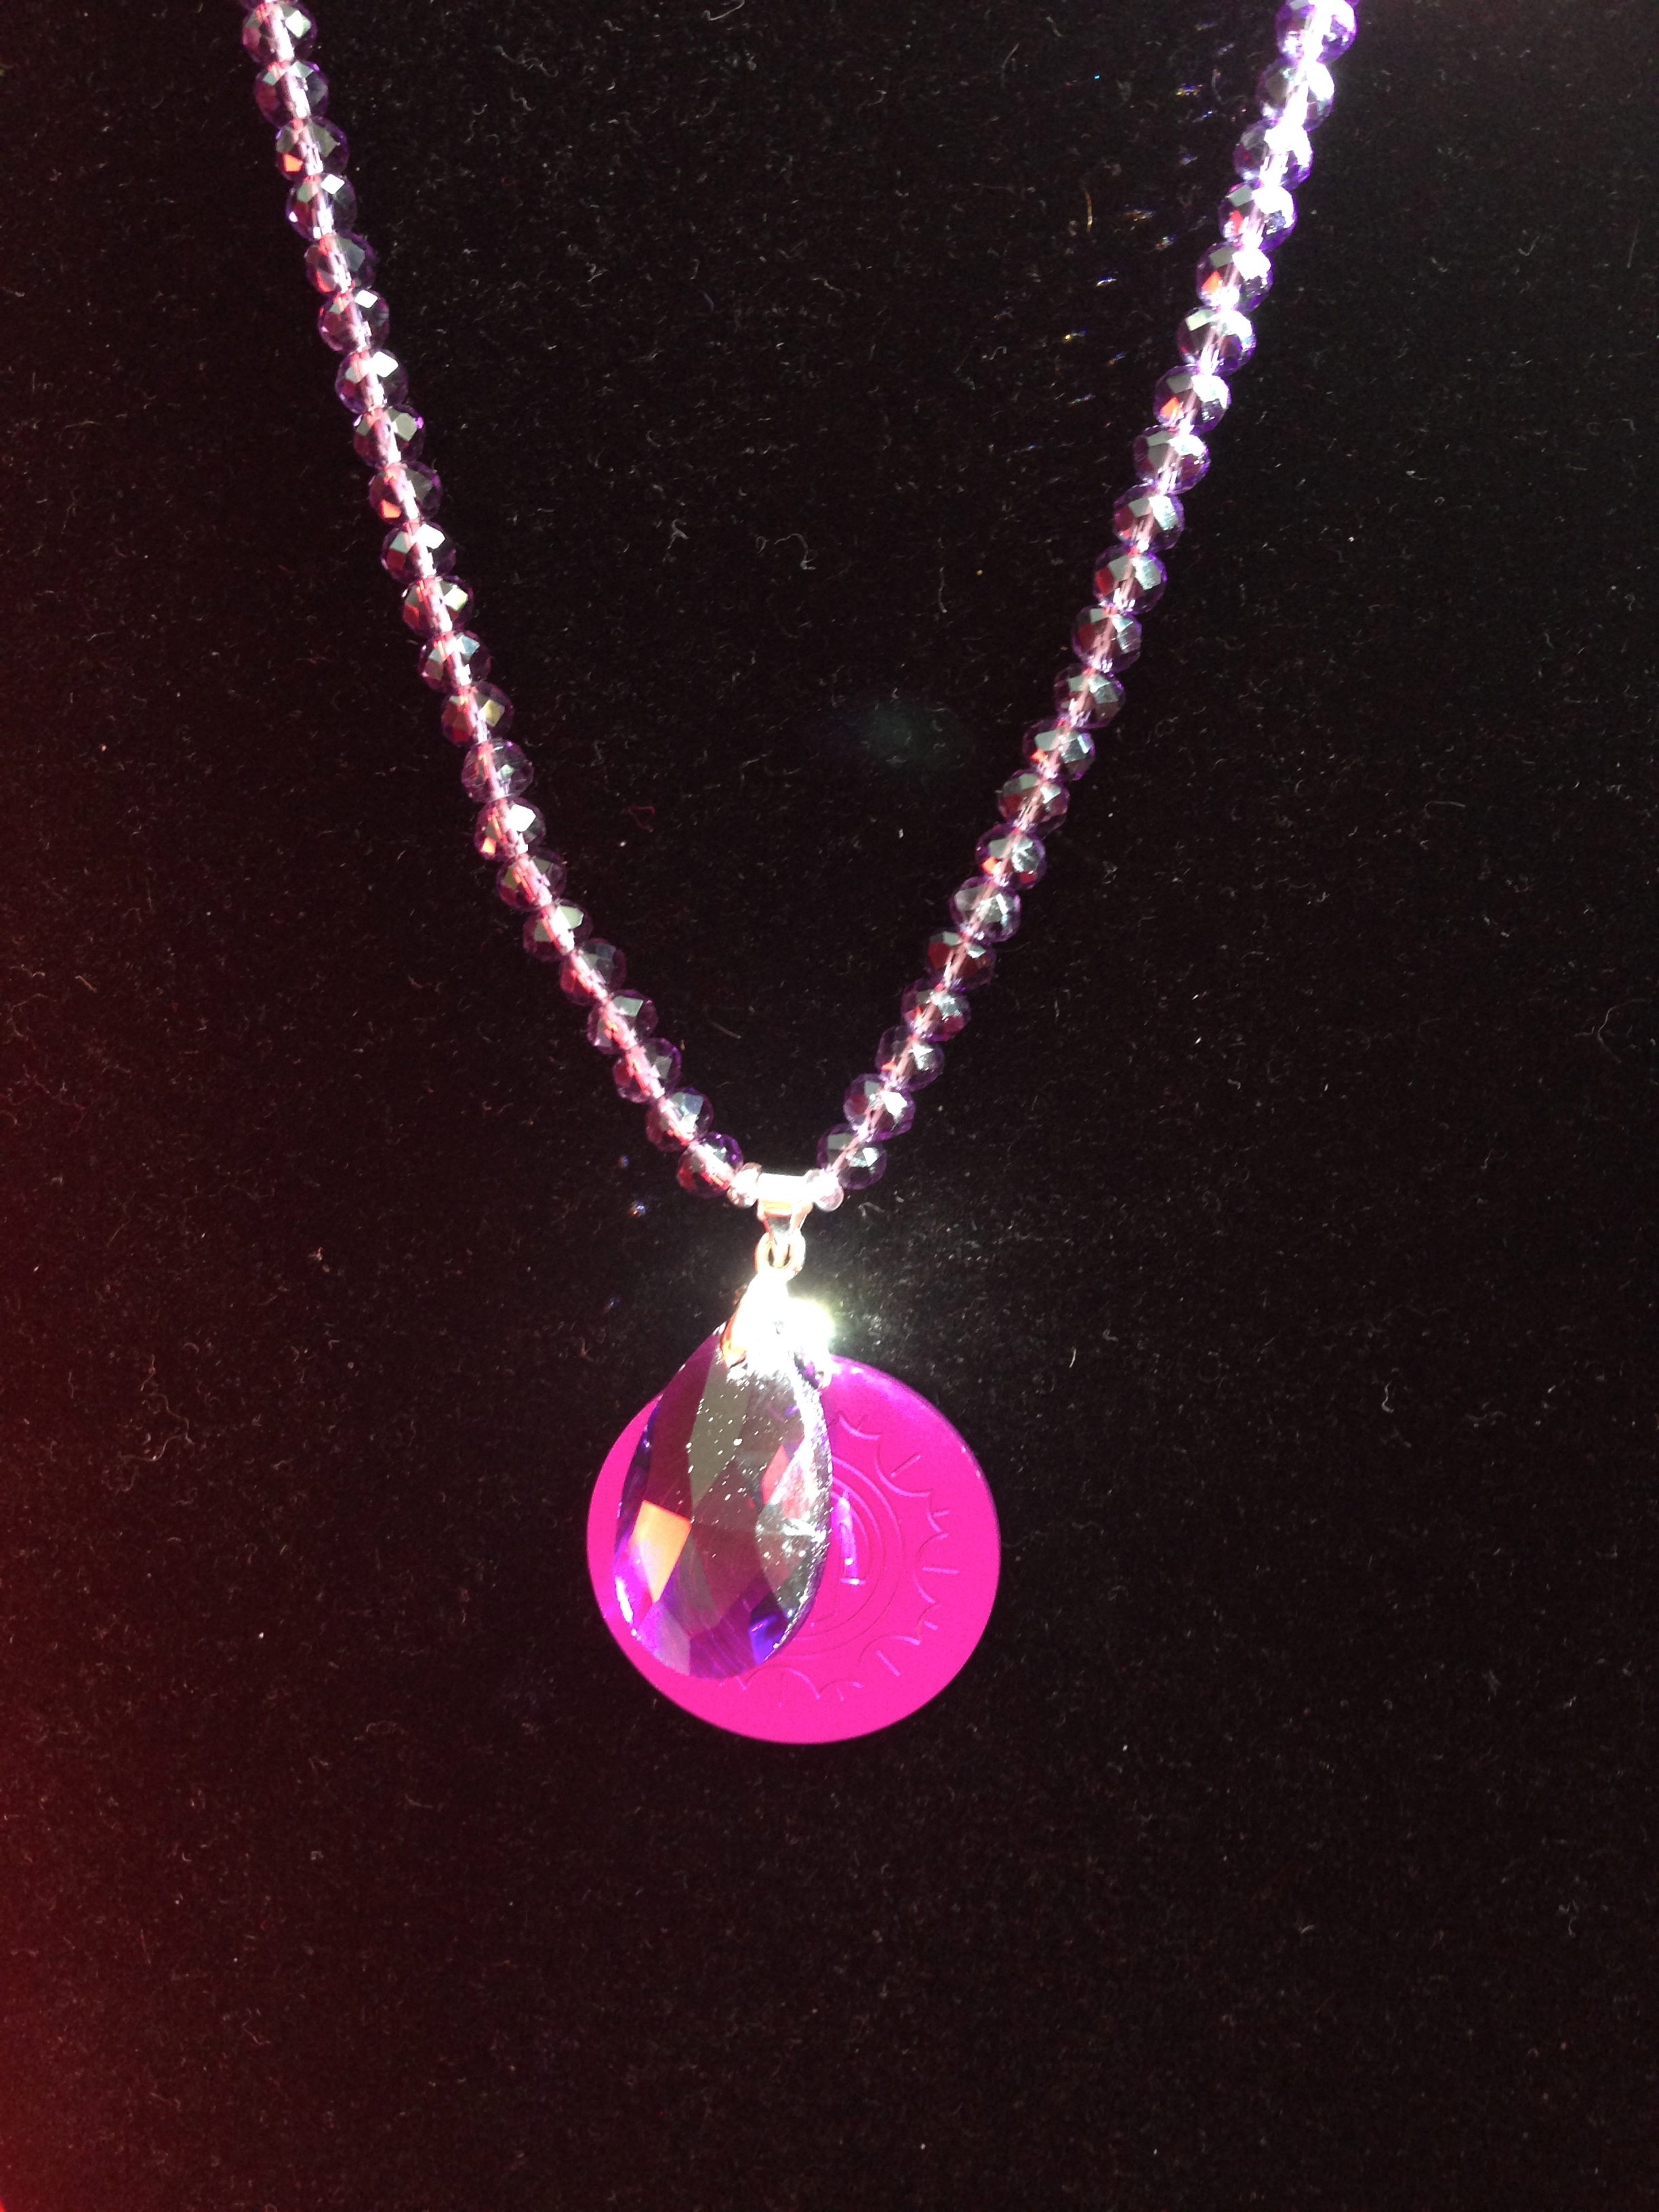 Purple Crystal Necklace & Pendant w/Energy Disk